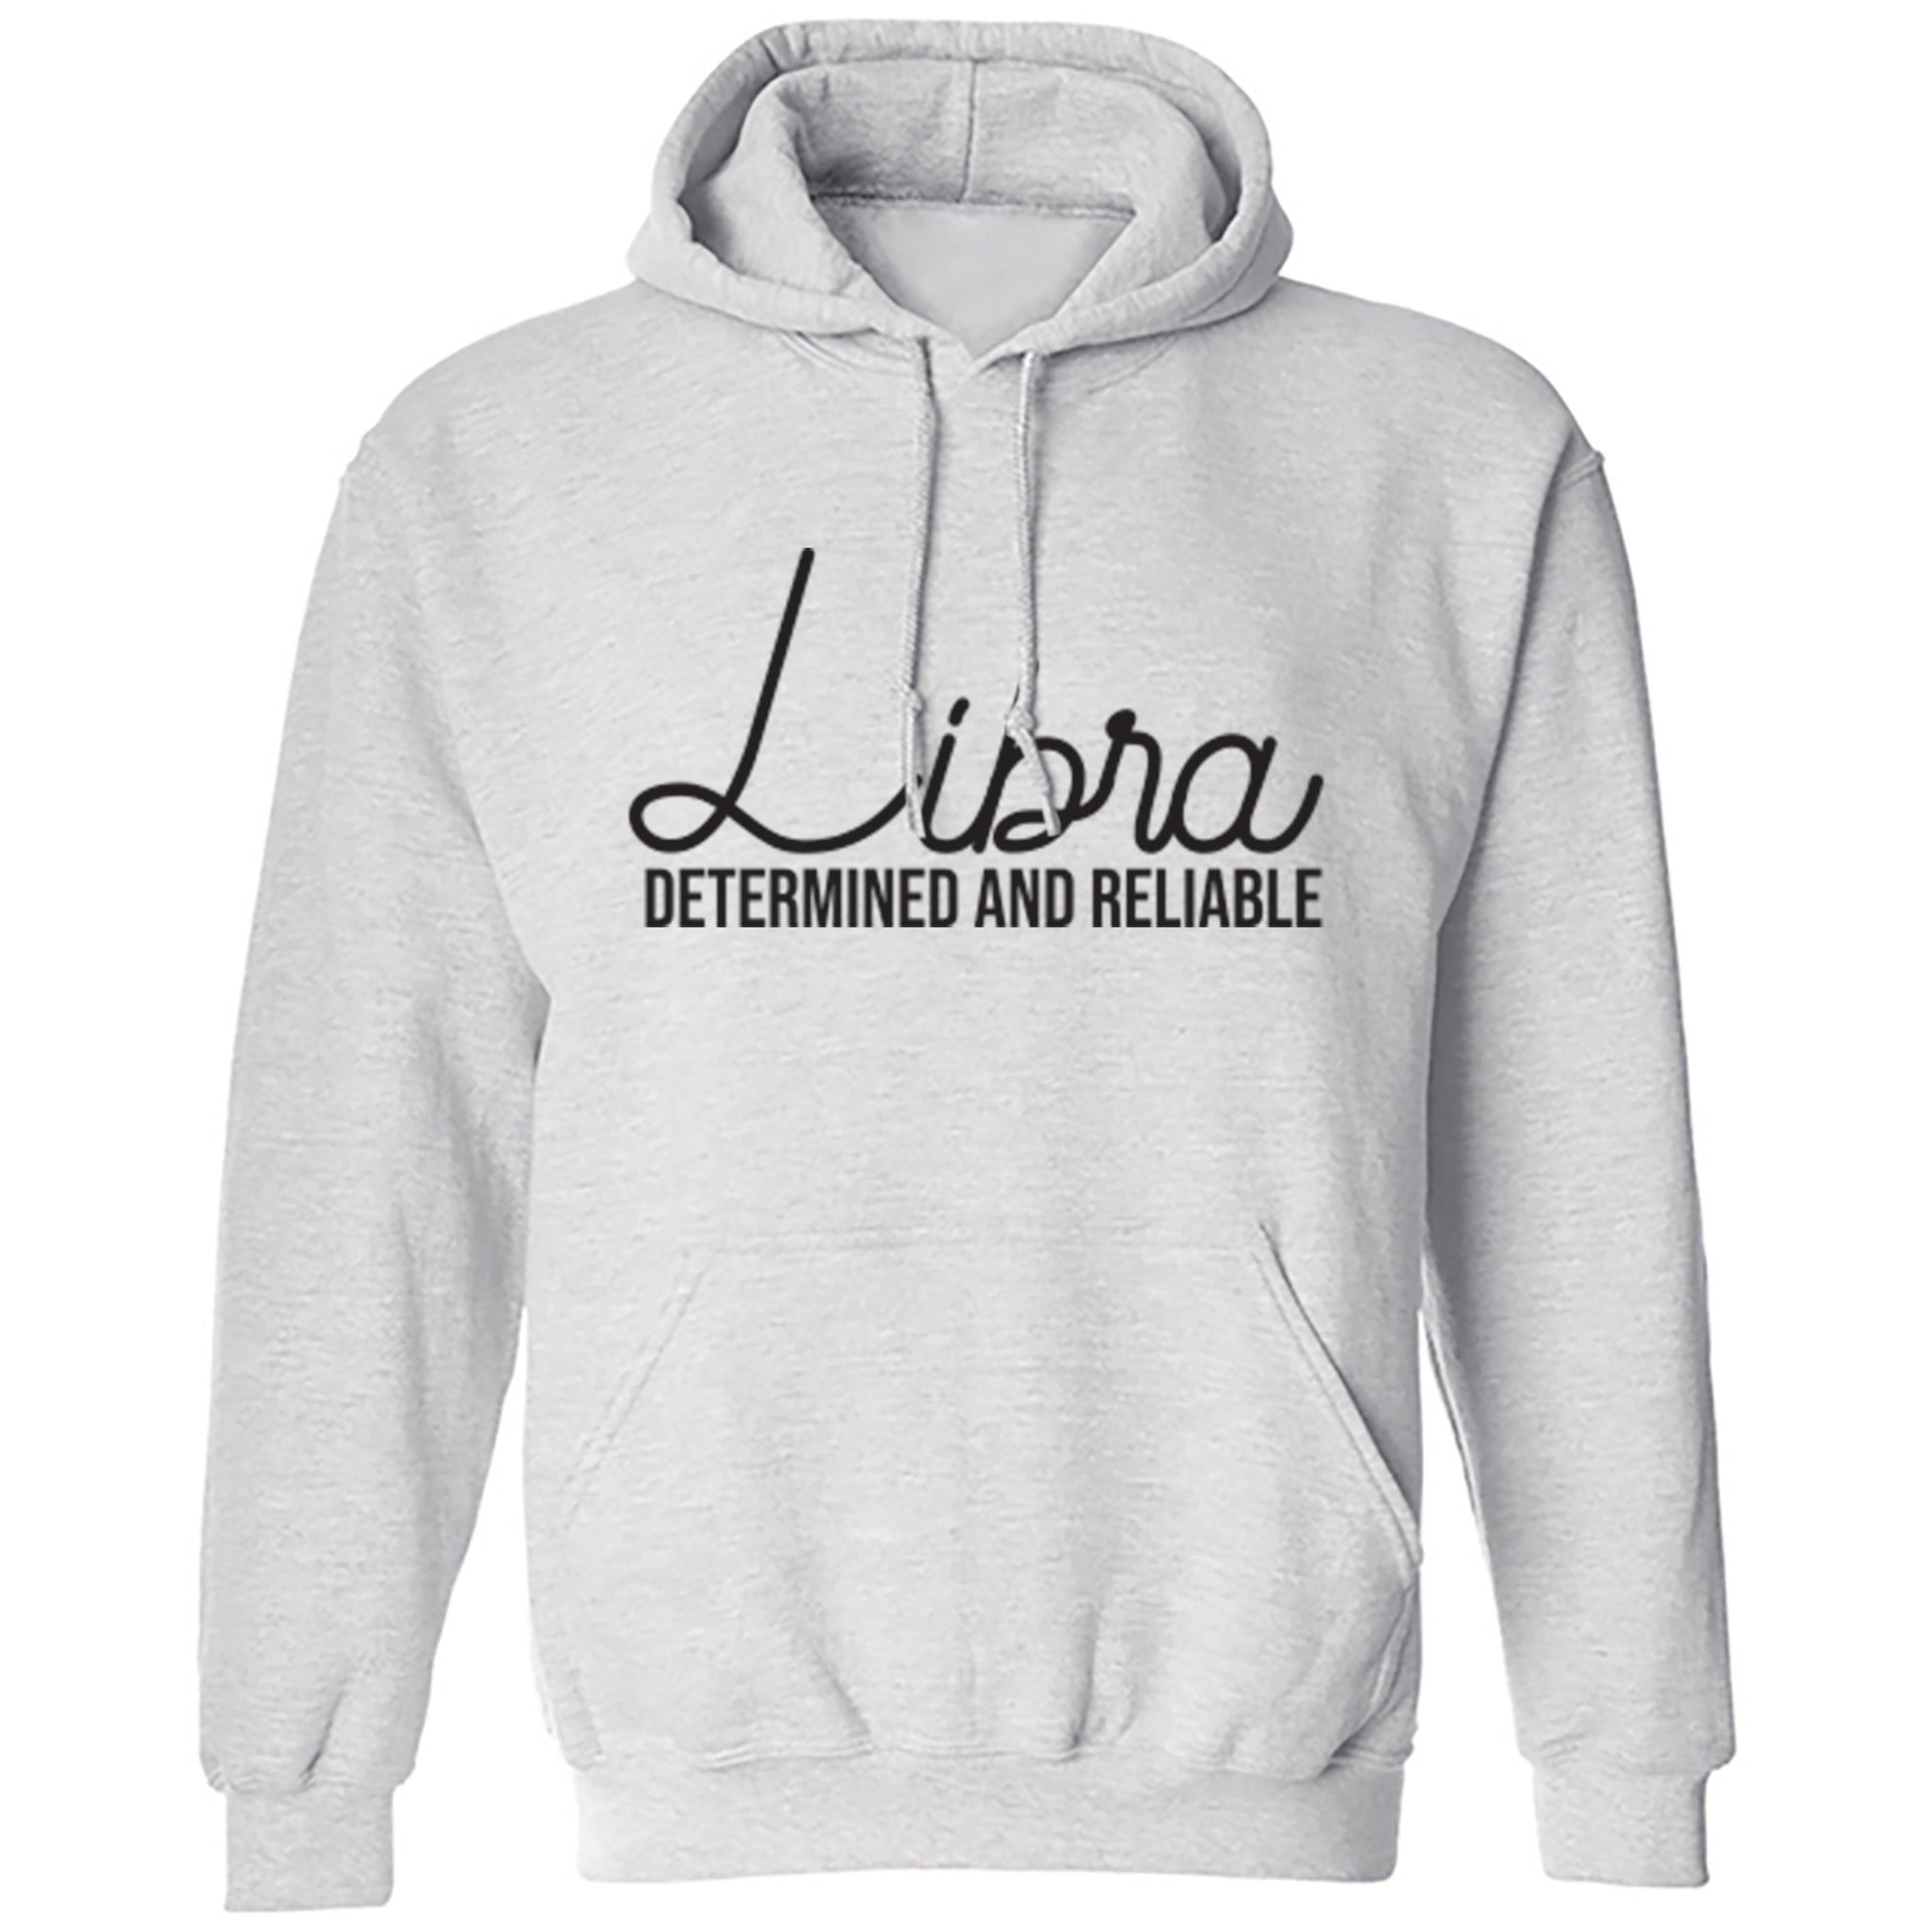 Libra, Determined And Reliable Unisex Hoodie S0442 - Illustrated Identity Ltd.